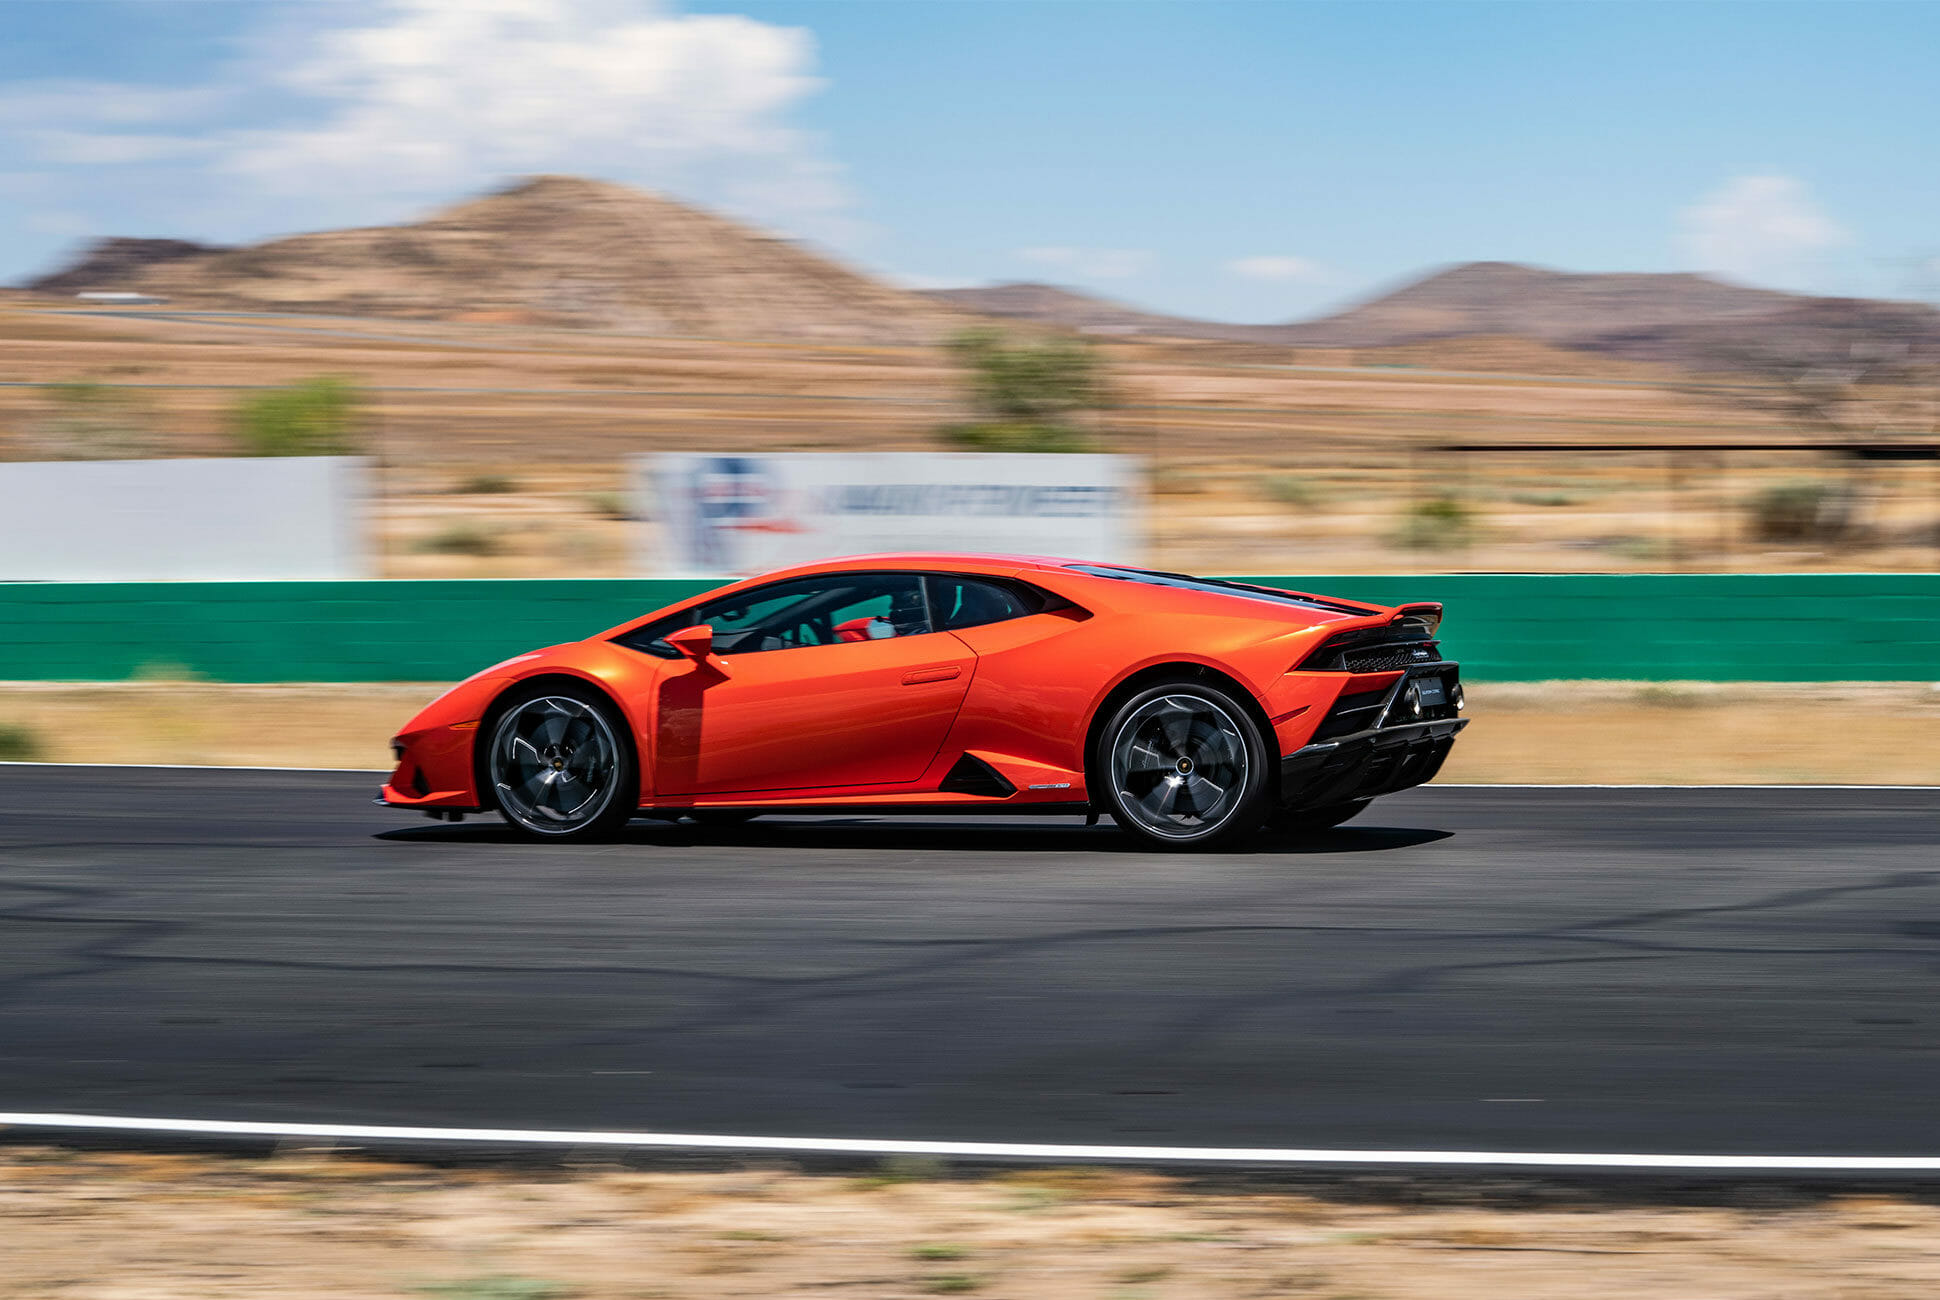 2020-Lamborghini-Huracan-EVO-Review-gear-patrol-slide-2